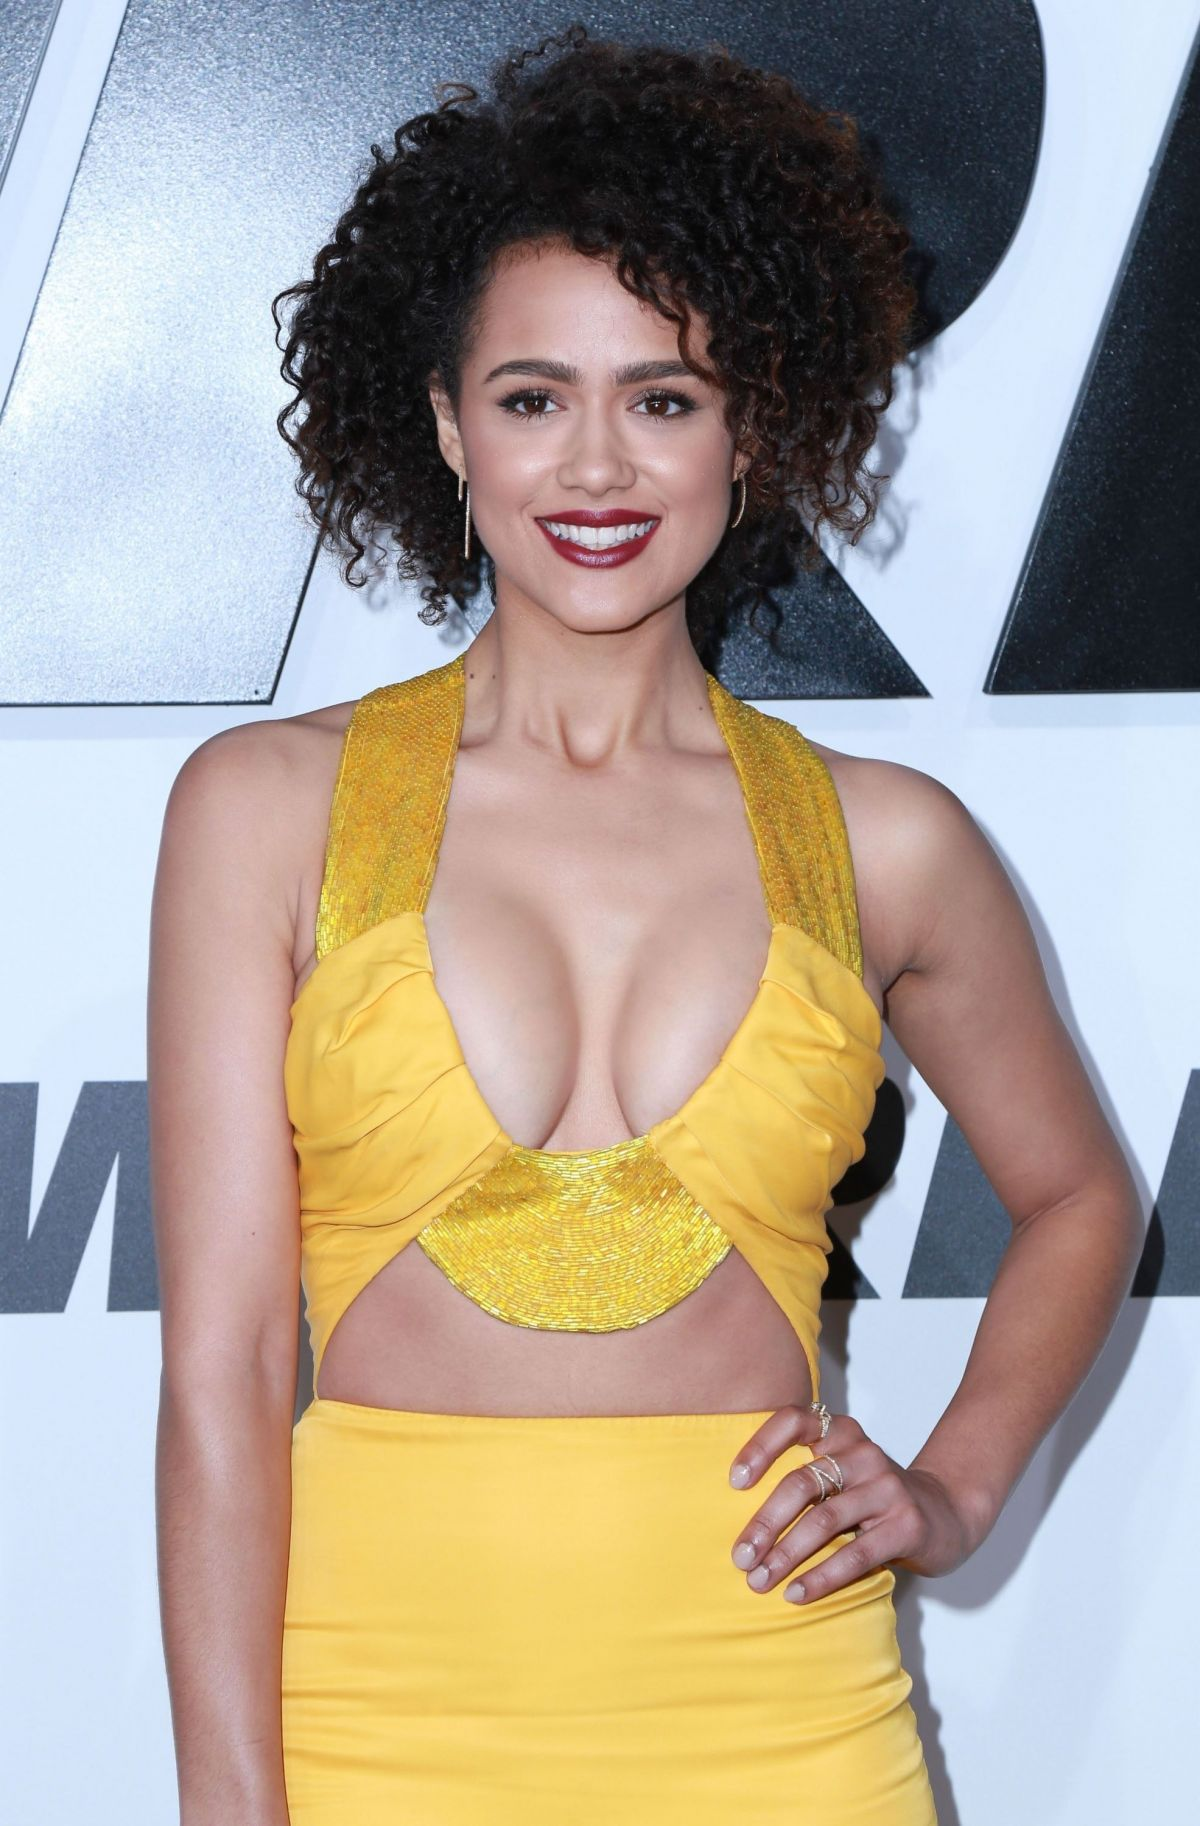 nathalie-emmanuel-at-furious-7-premiere-in-hollywood_1